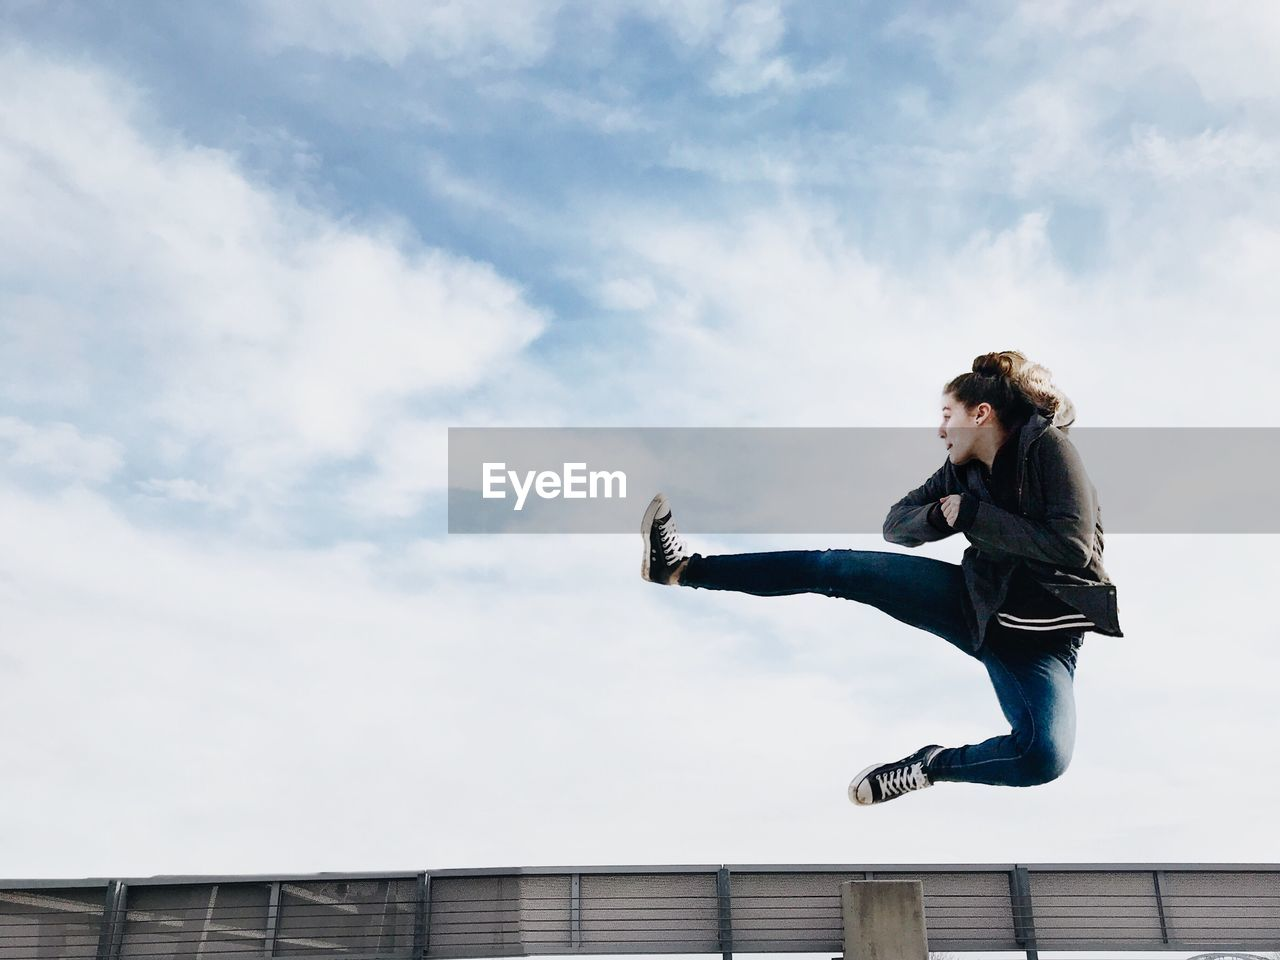 Full Length Of Woman Jumping Against Cloudy Sky